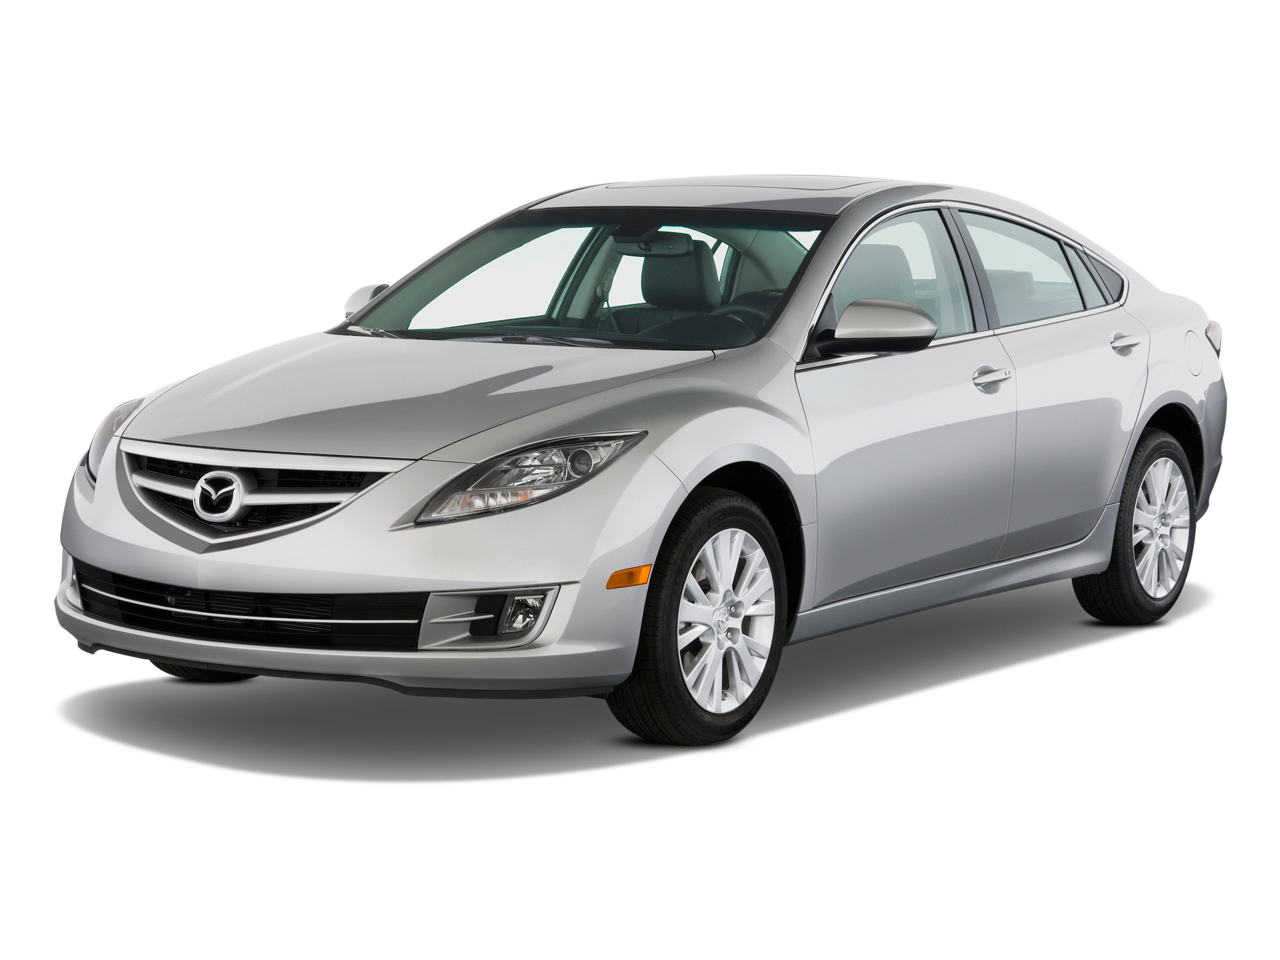 2011 mazda mazda6 review ratings specs prices and photos the car connection. Black Bedroom Furniture Sets. Home Design Ideas